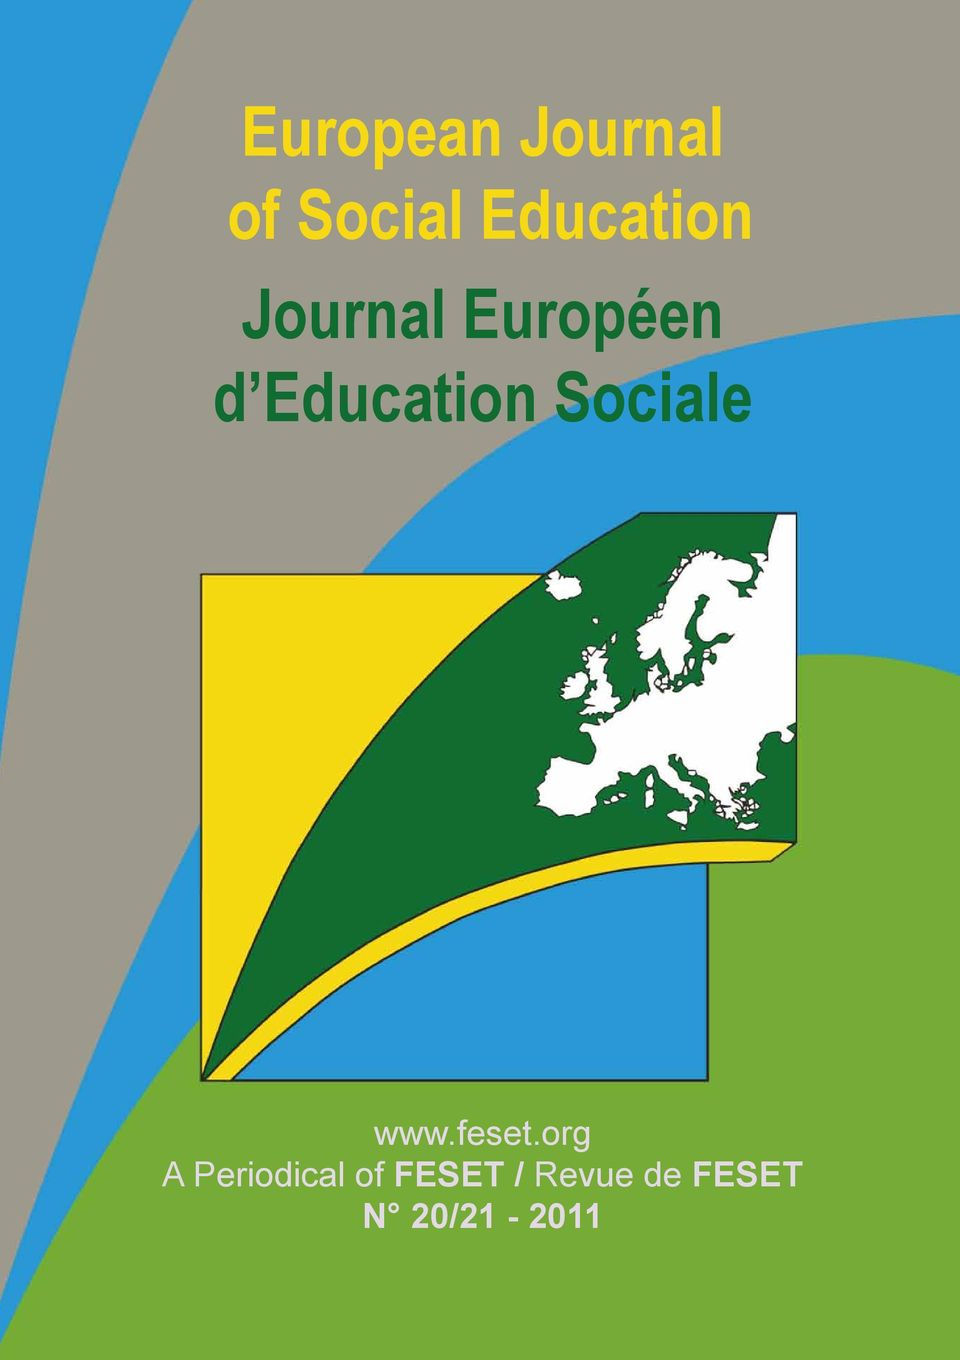 Education Sociale www.feset.